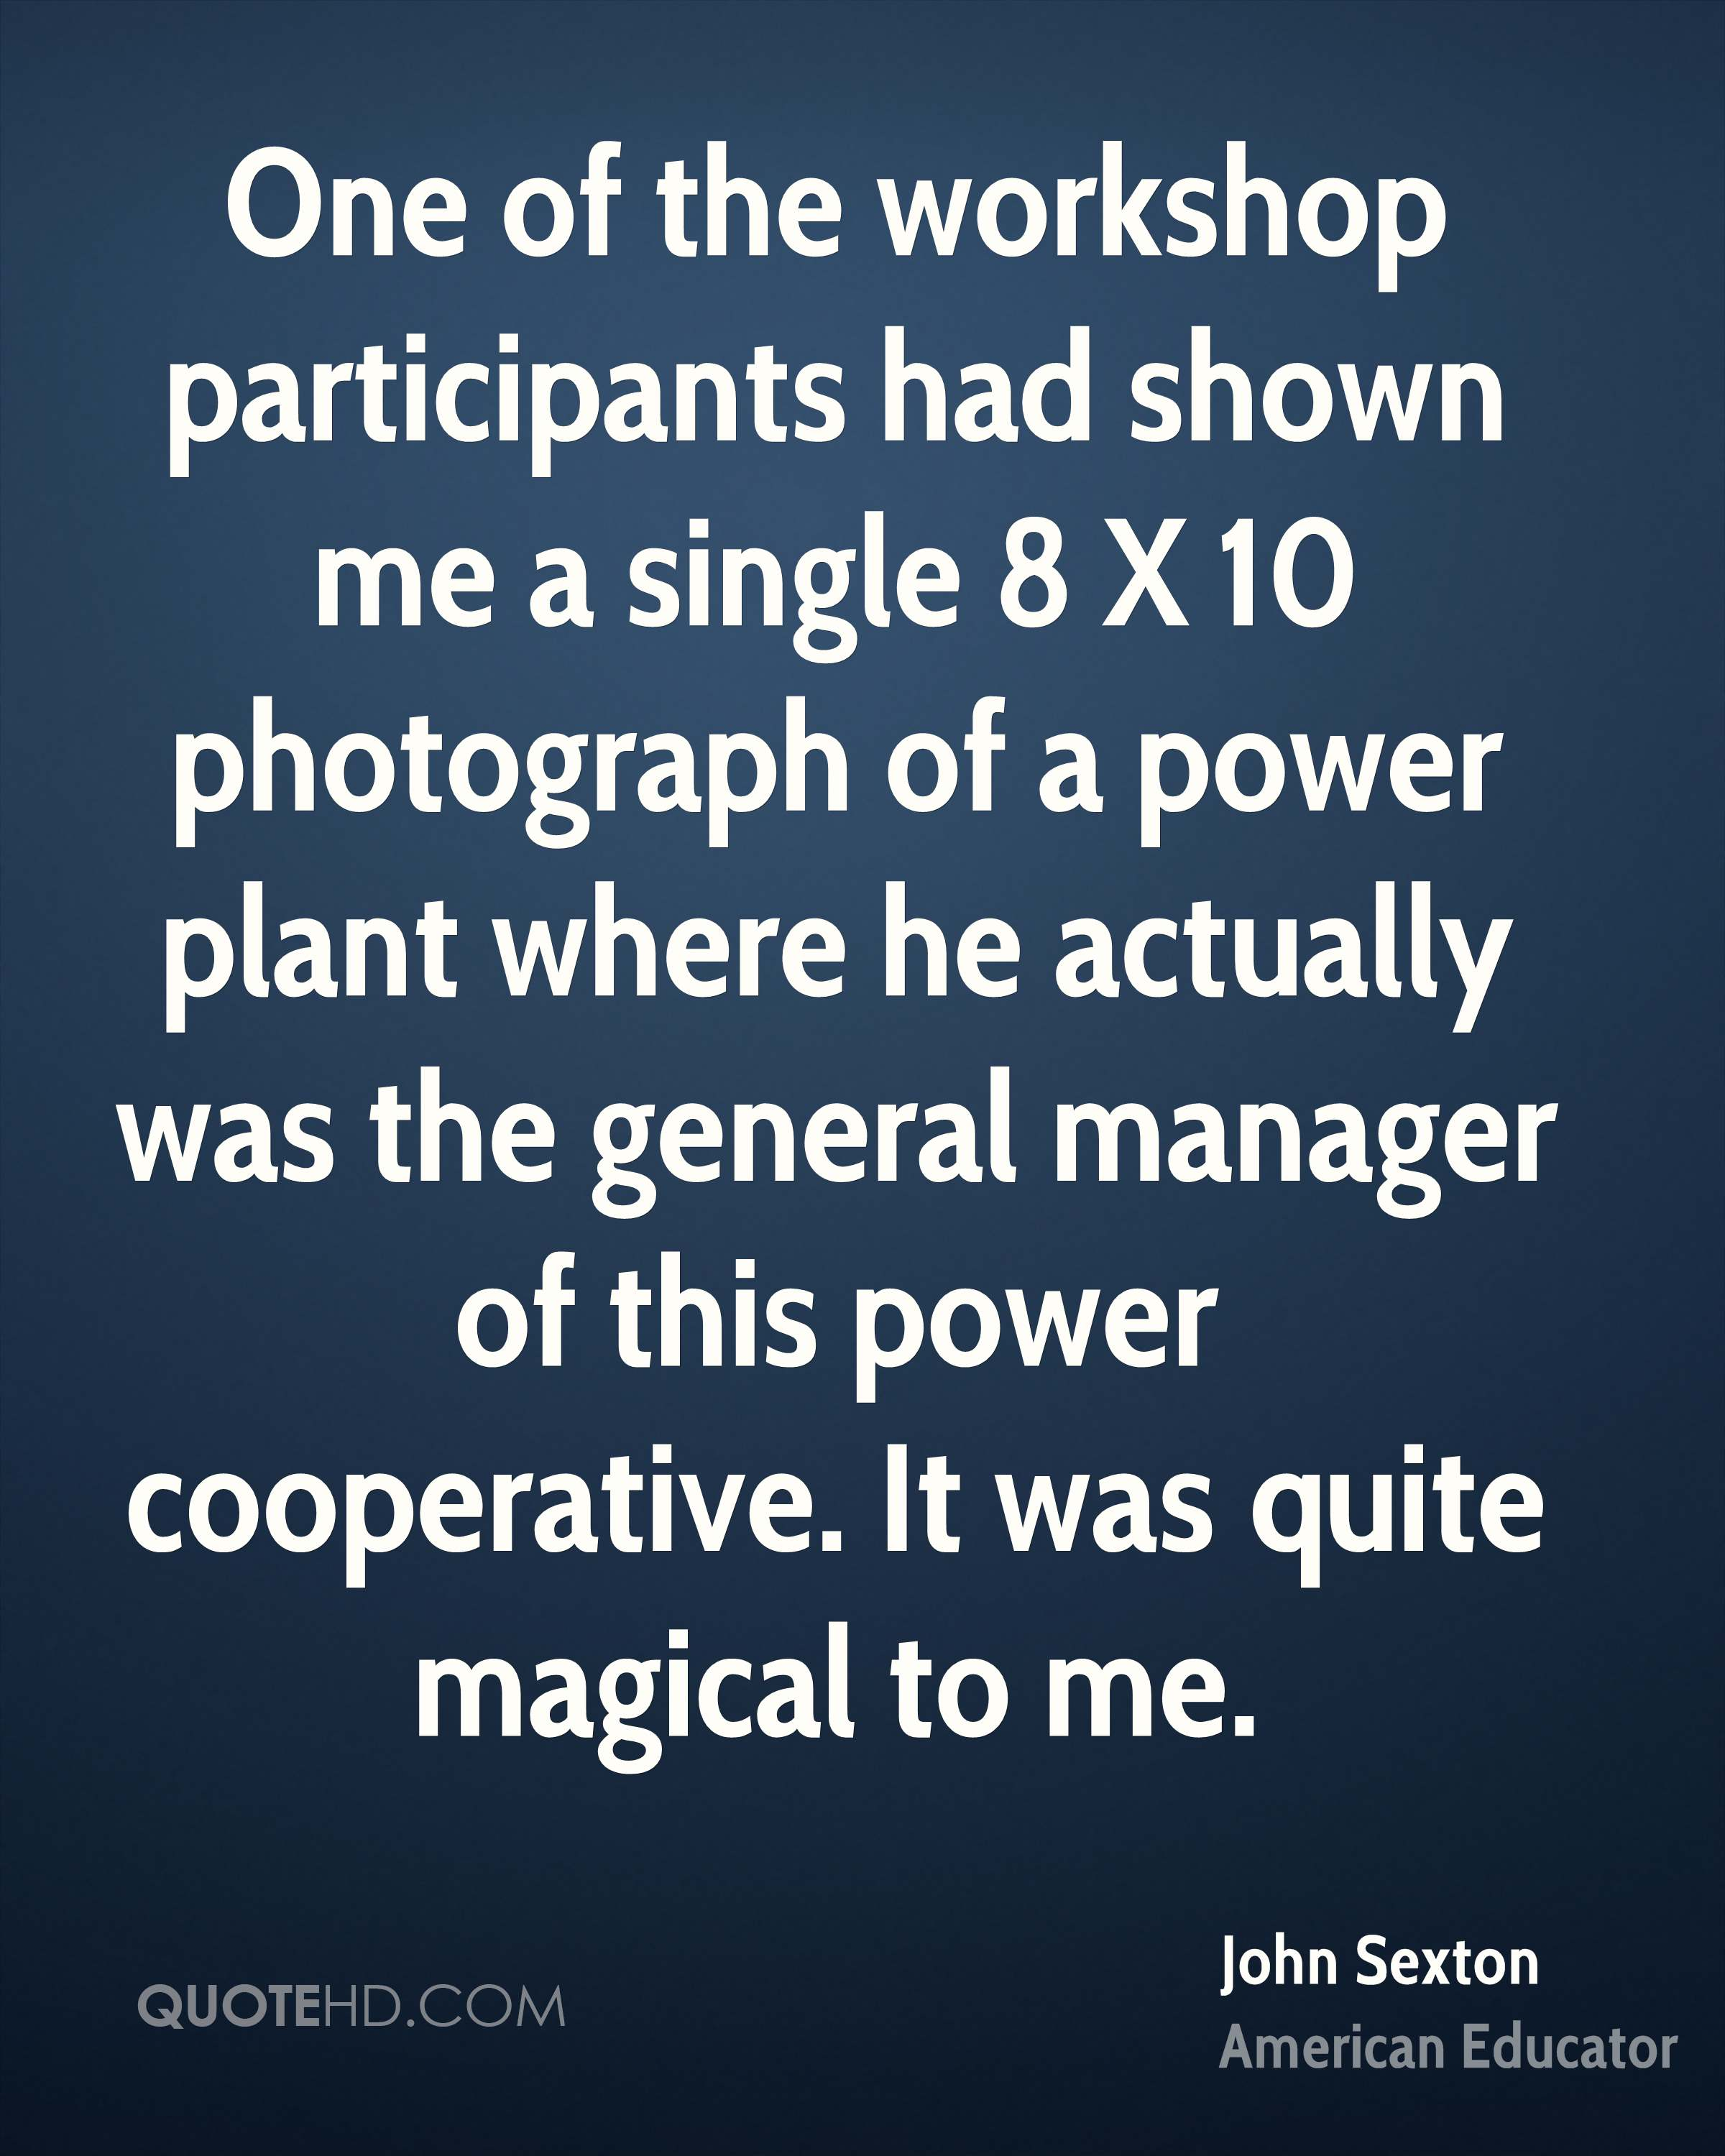 One of the workshop participants had shown me a single 8 X 10 photograph of a power plant where he actually was the general manager of this power cooperative. It was quite magical to me.